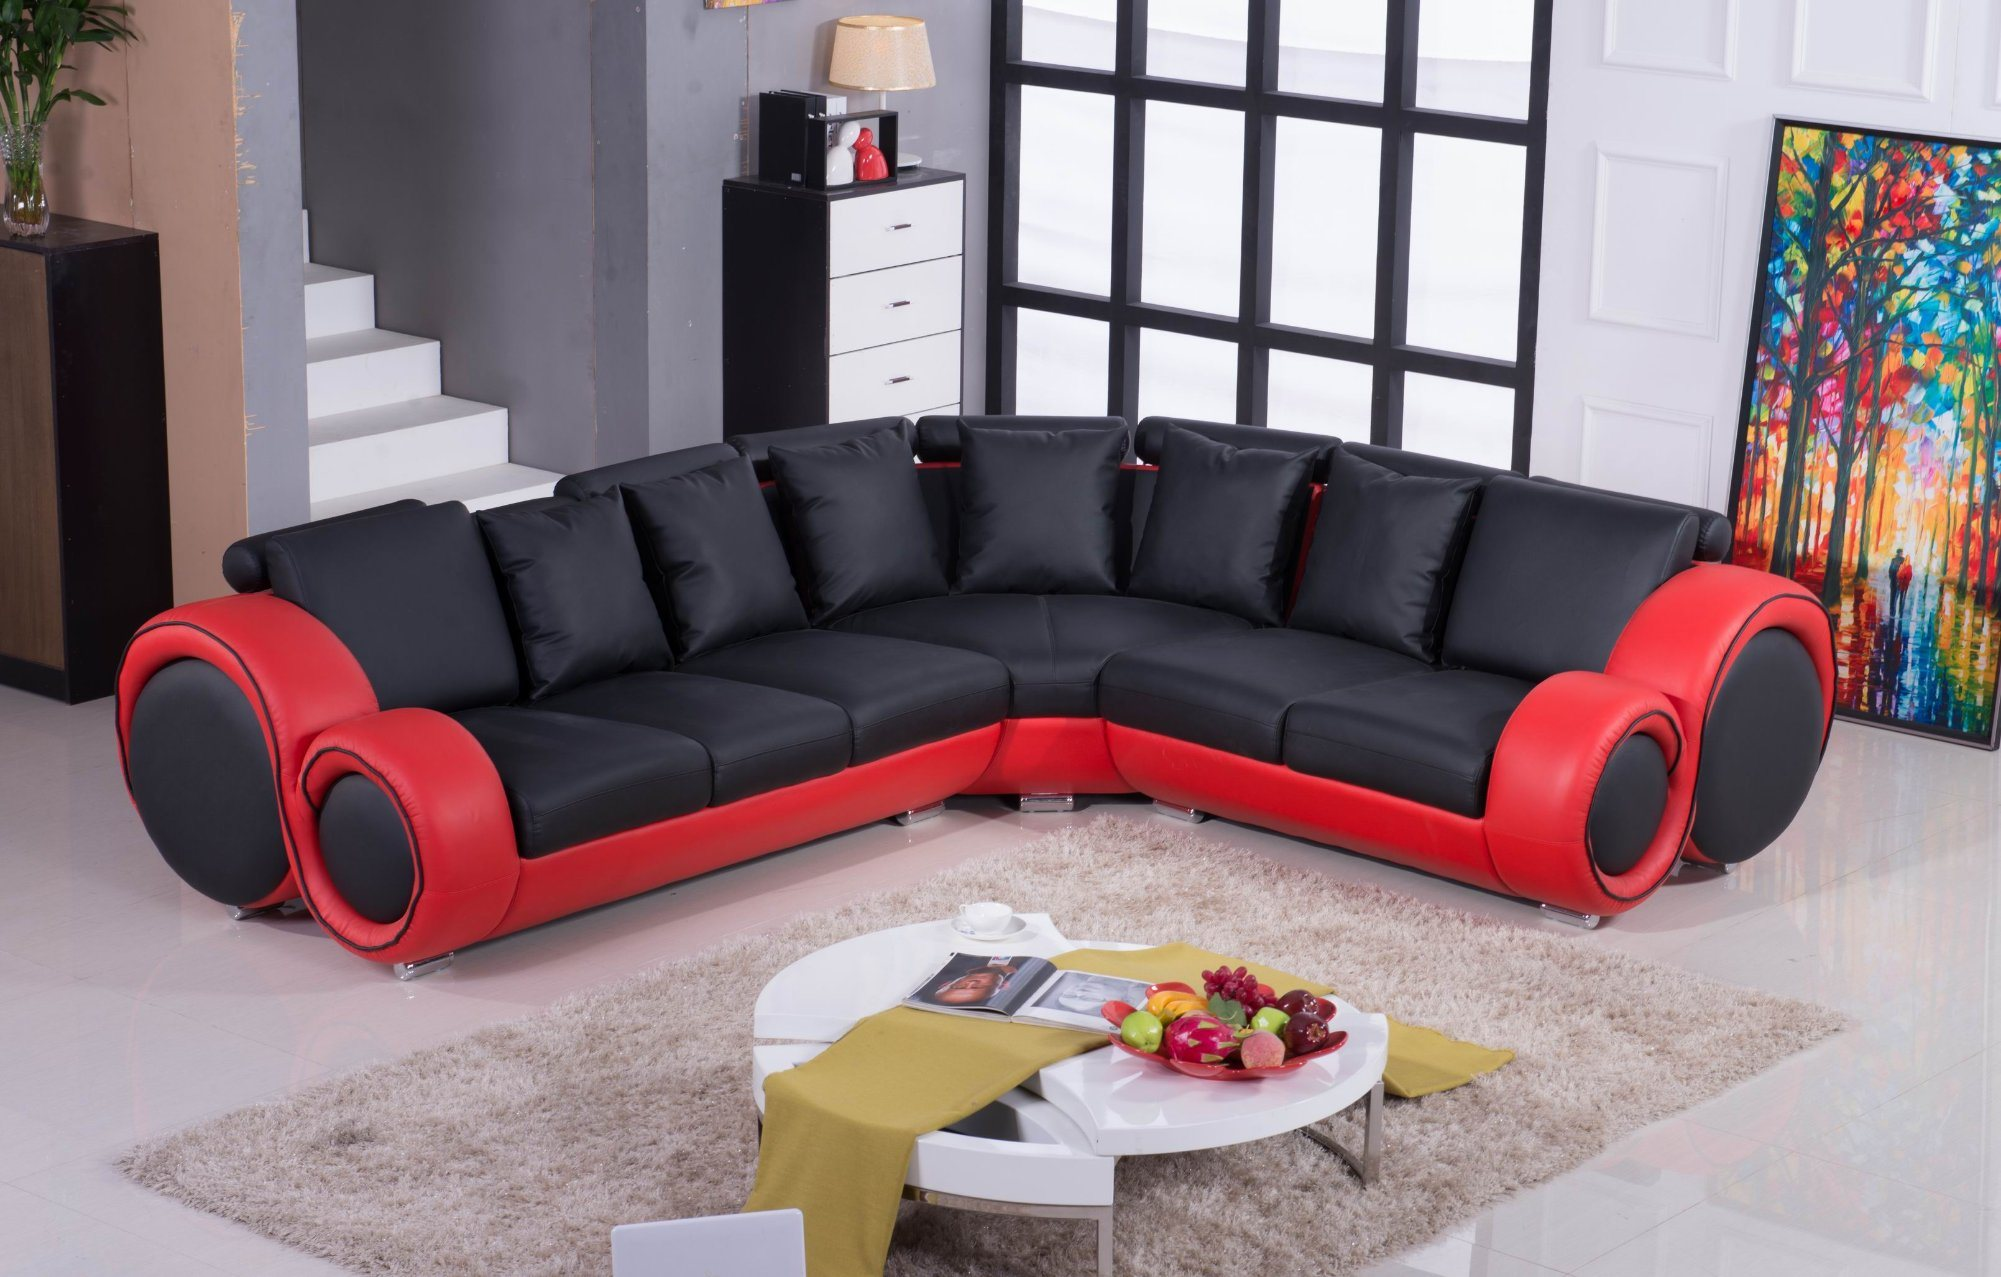 China 2020 Style Modern Latest Design Leather Sofa Luxury Classic Home Furniture Victorian Style Leather Sofa China Corner Multi Sofa Italy Leather Sofa